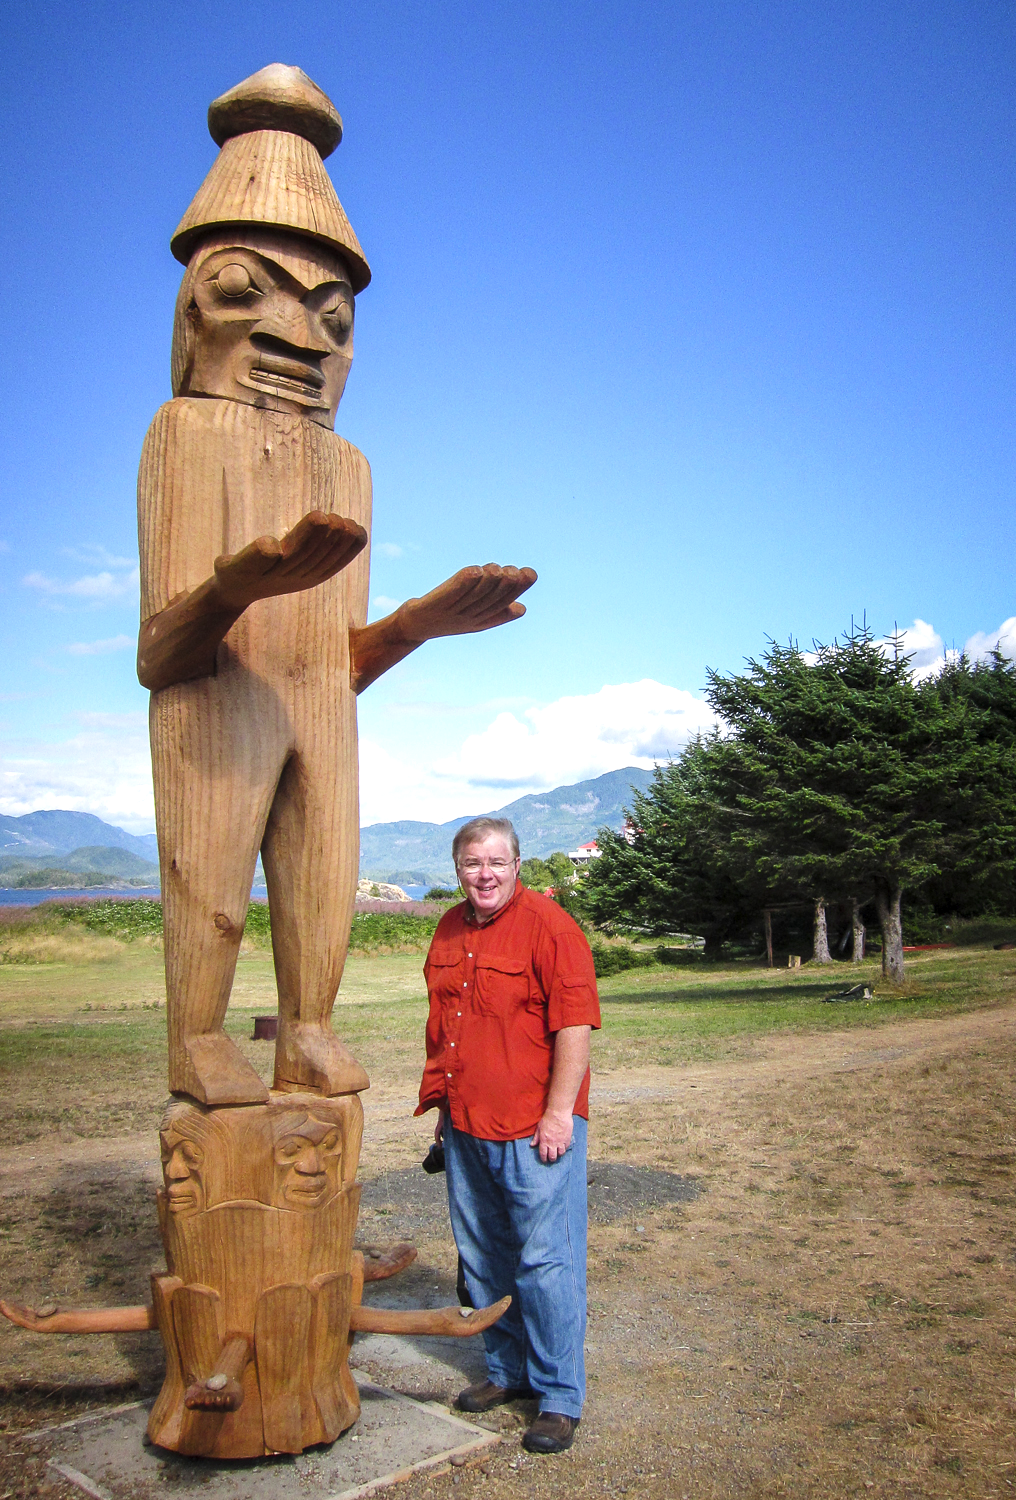 The new totem welcomes all, Bob provides scale